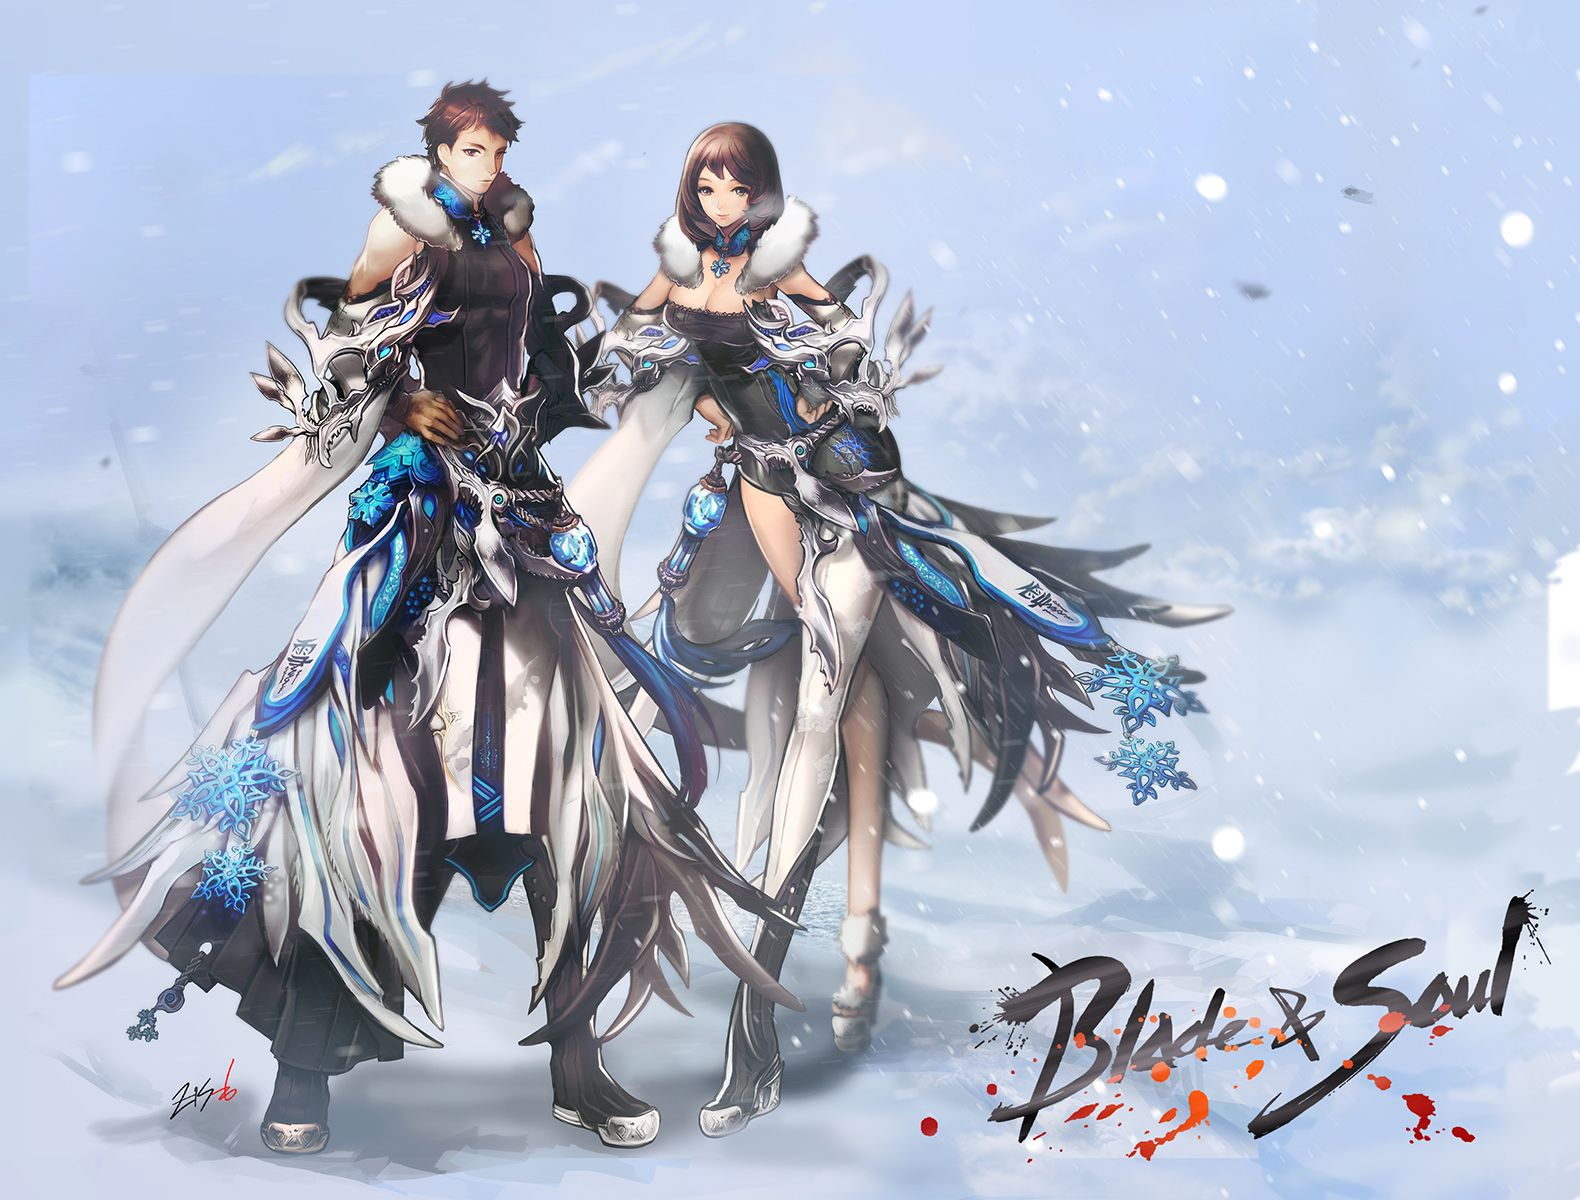 Blade Soul Wallpaper 1580x1200 132370 Wallpaperup Blade And Soul Blade And Soul Anime Soul Wallpaper